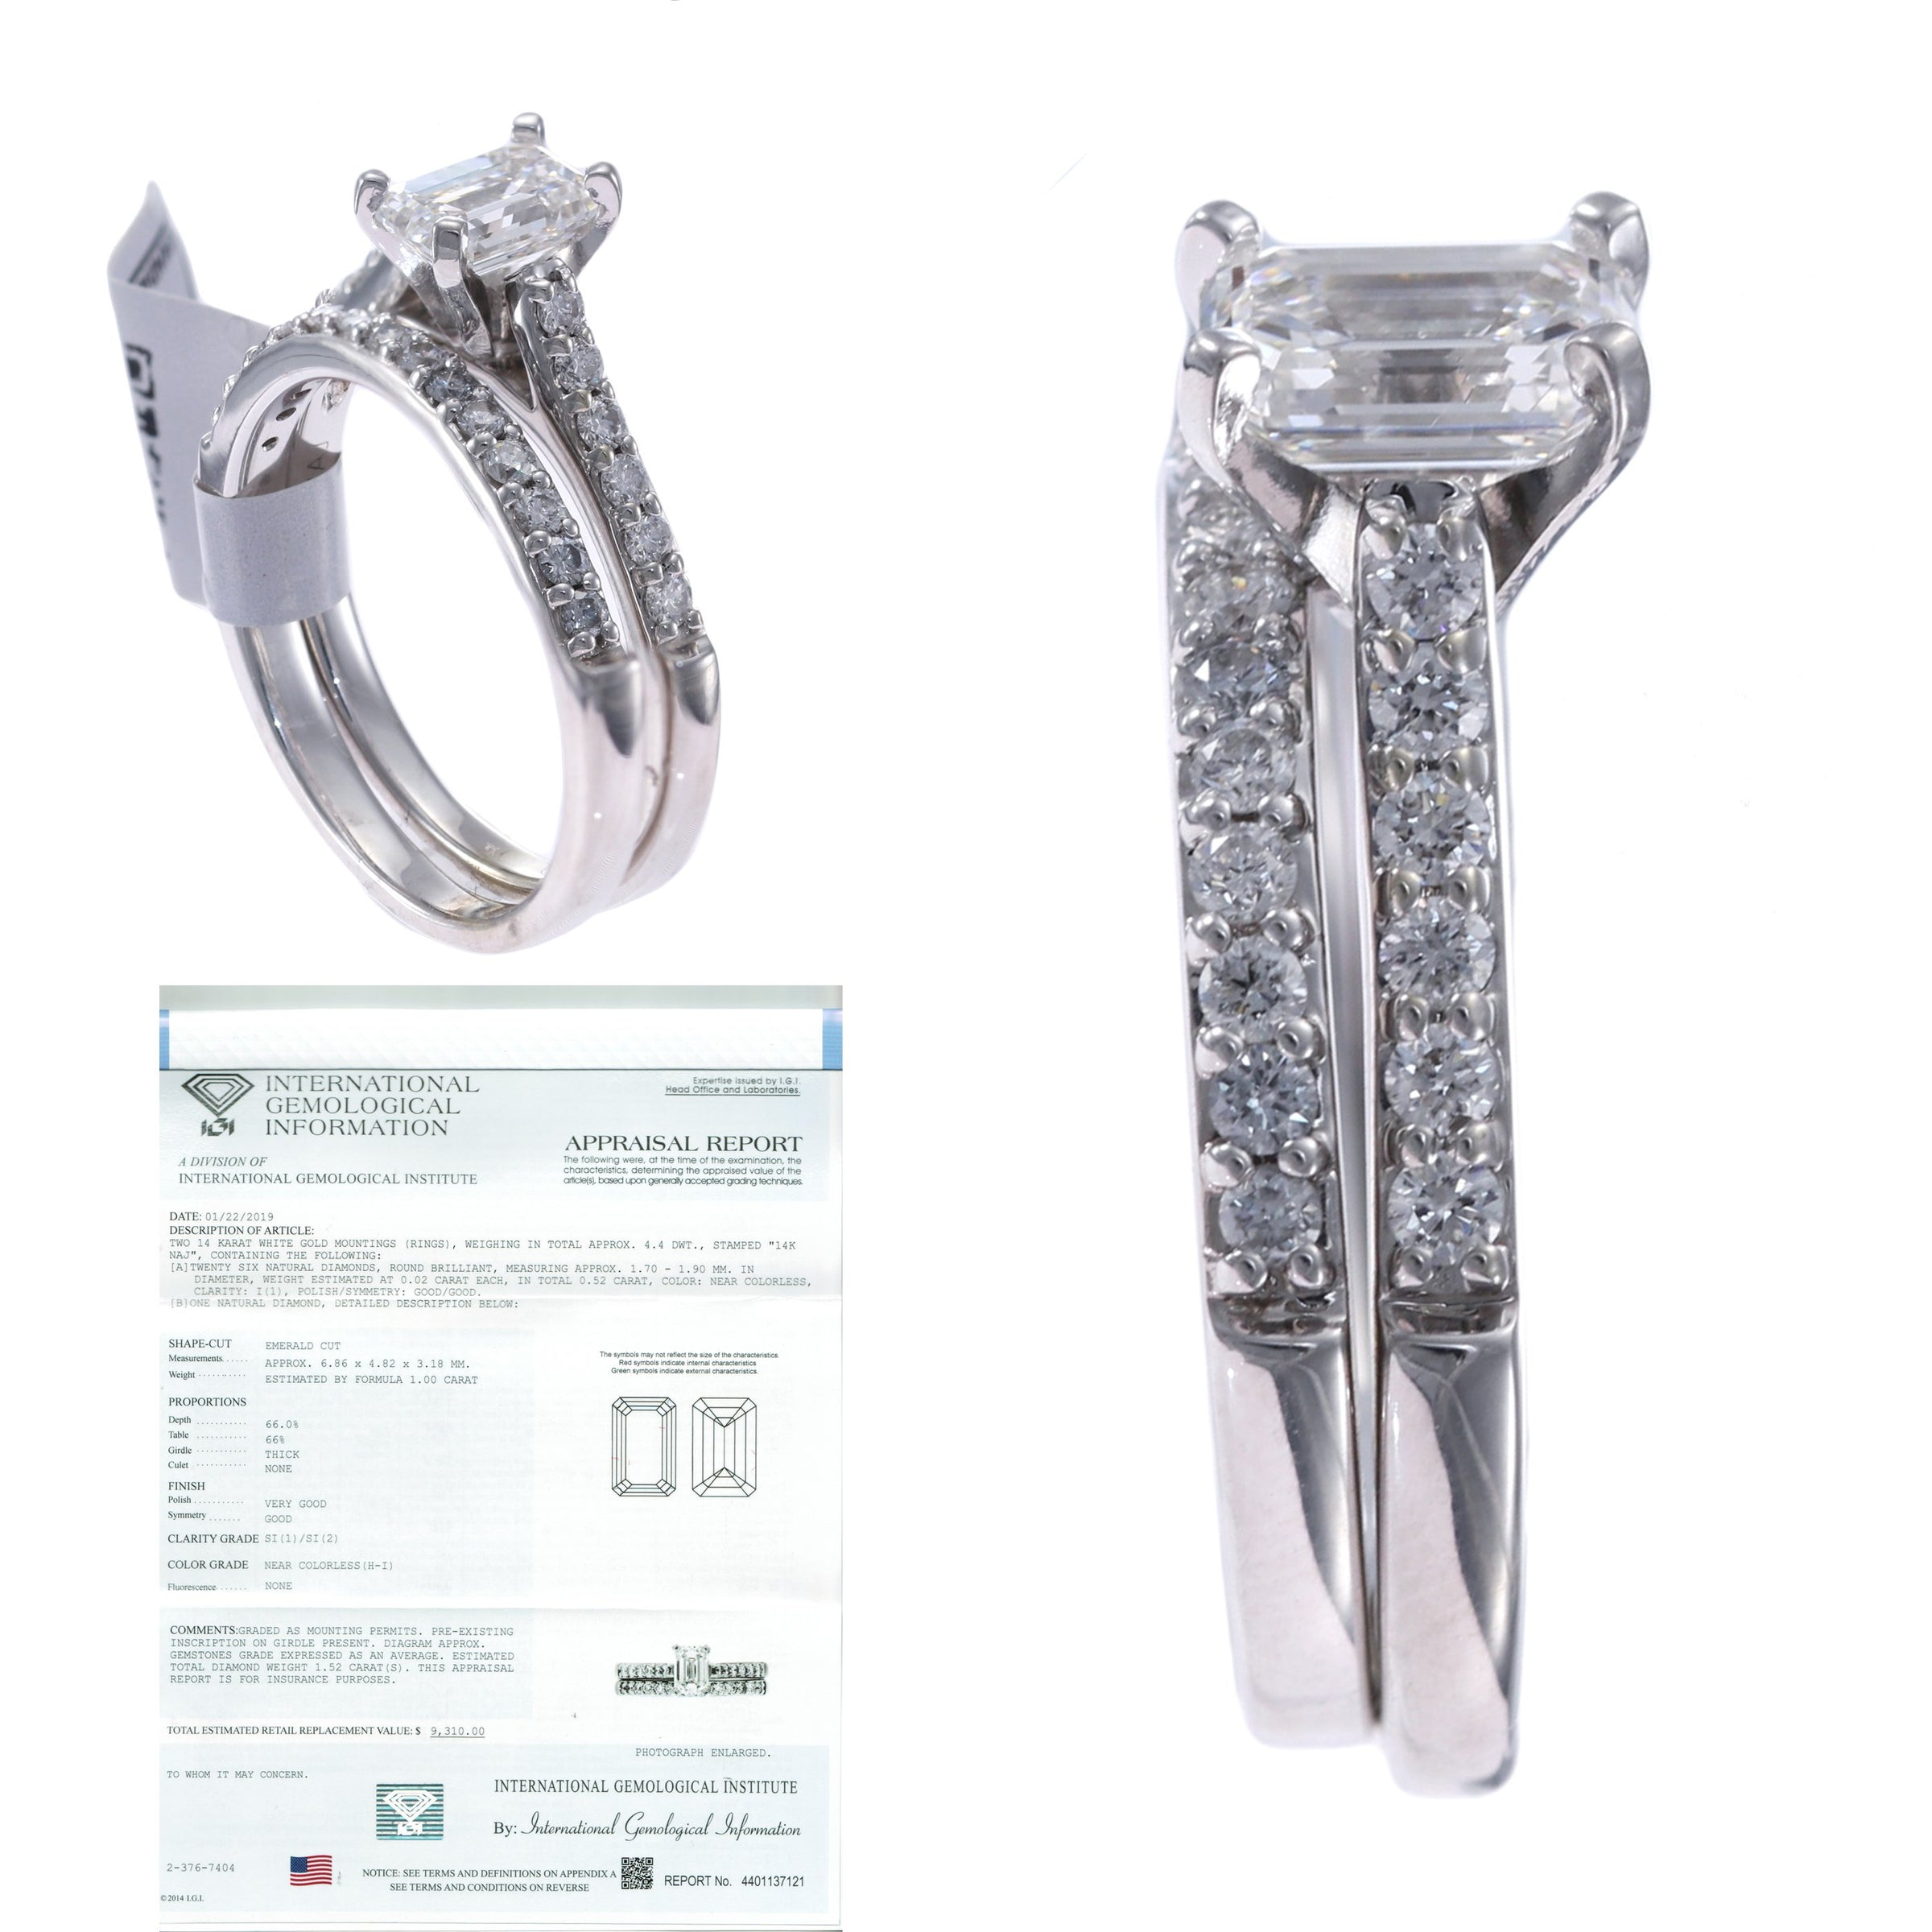 This is a photo of 38.38CTW Emerald Cut Diamond Engagement Ring Wedding Band Set 384k White Gold H/SI